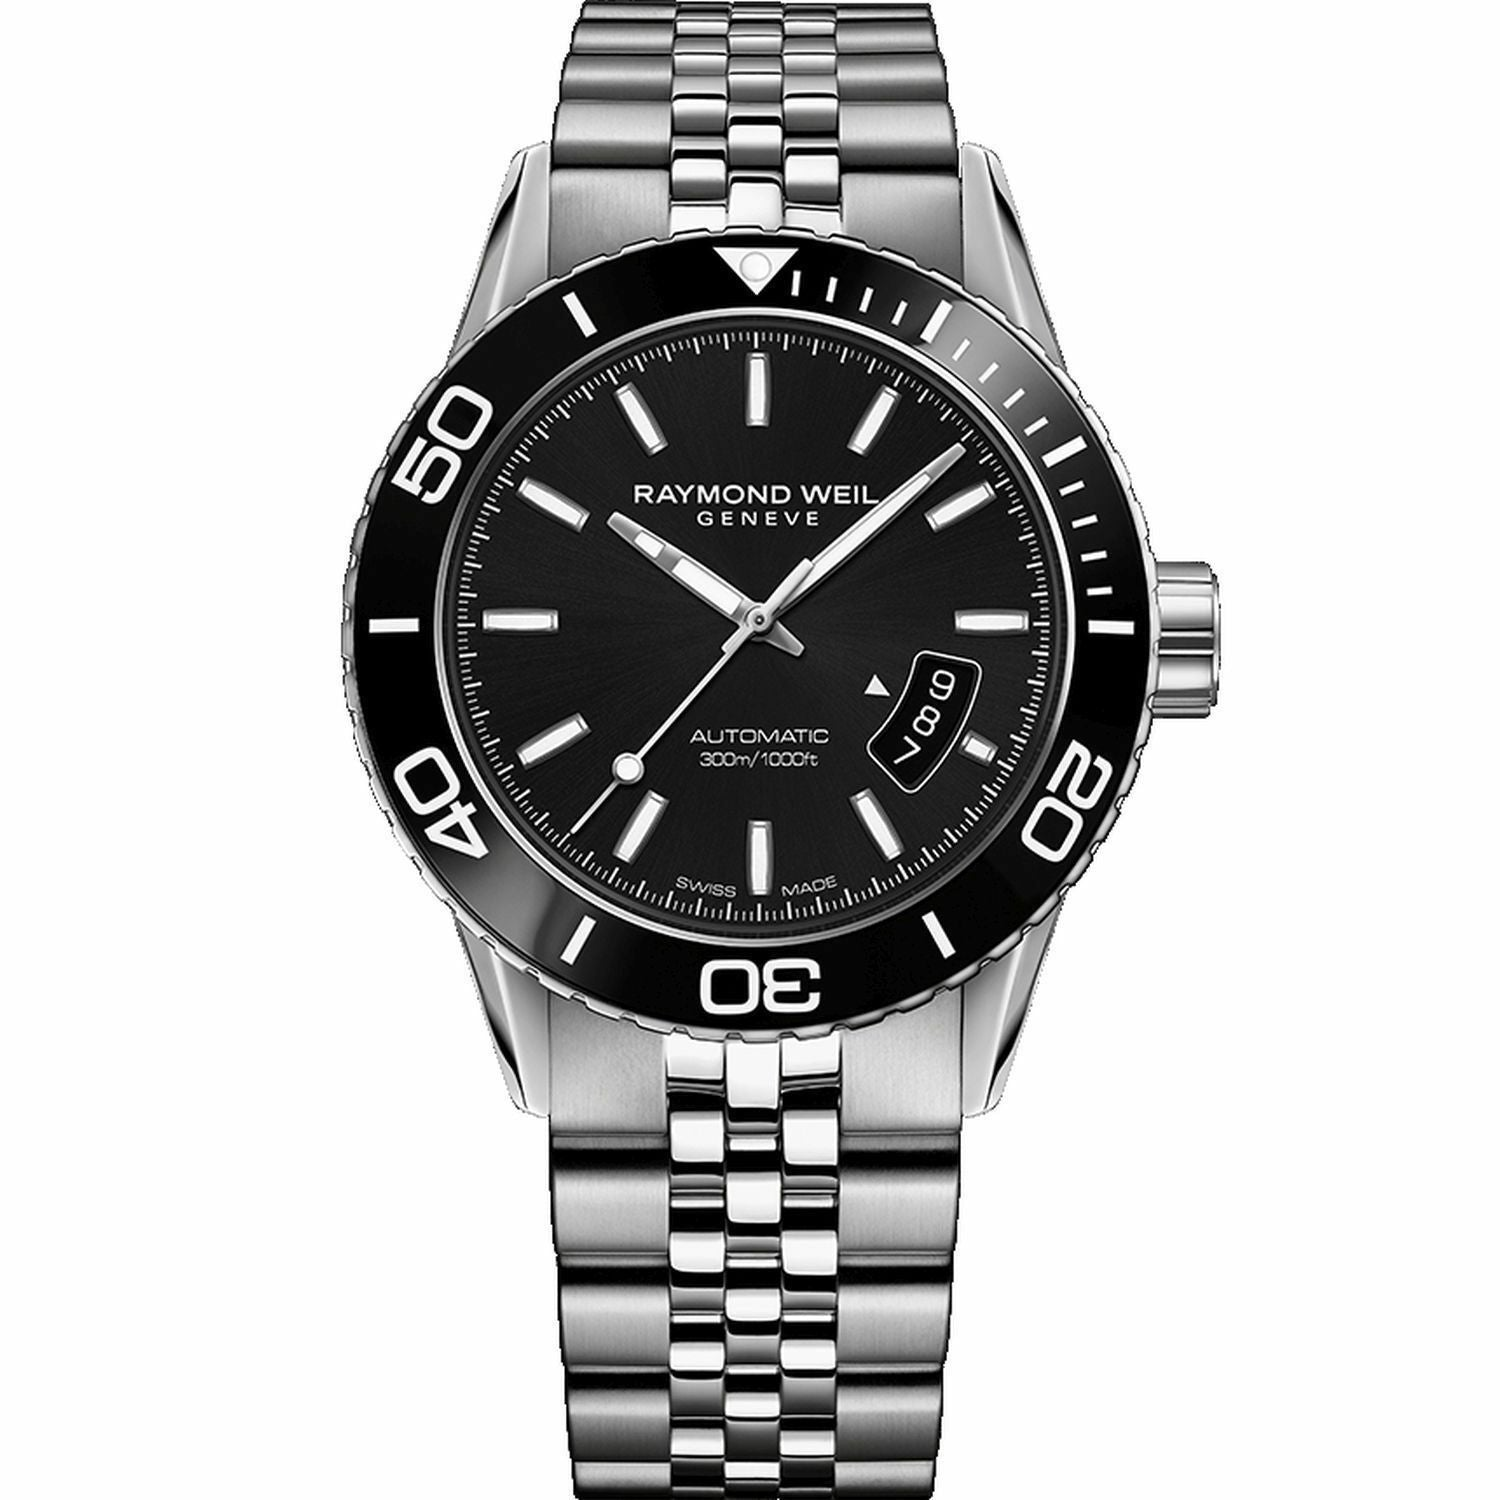 NEW RAYMOND WEIL FREELANCER  2760-ST1-20001 AUTOMATIC BLACK DATE MENS WATCH